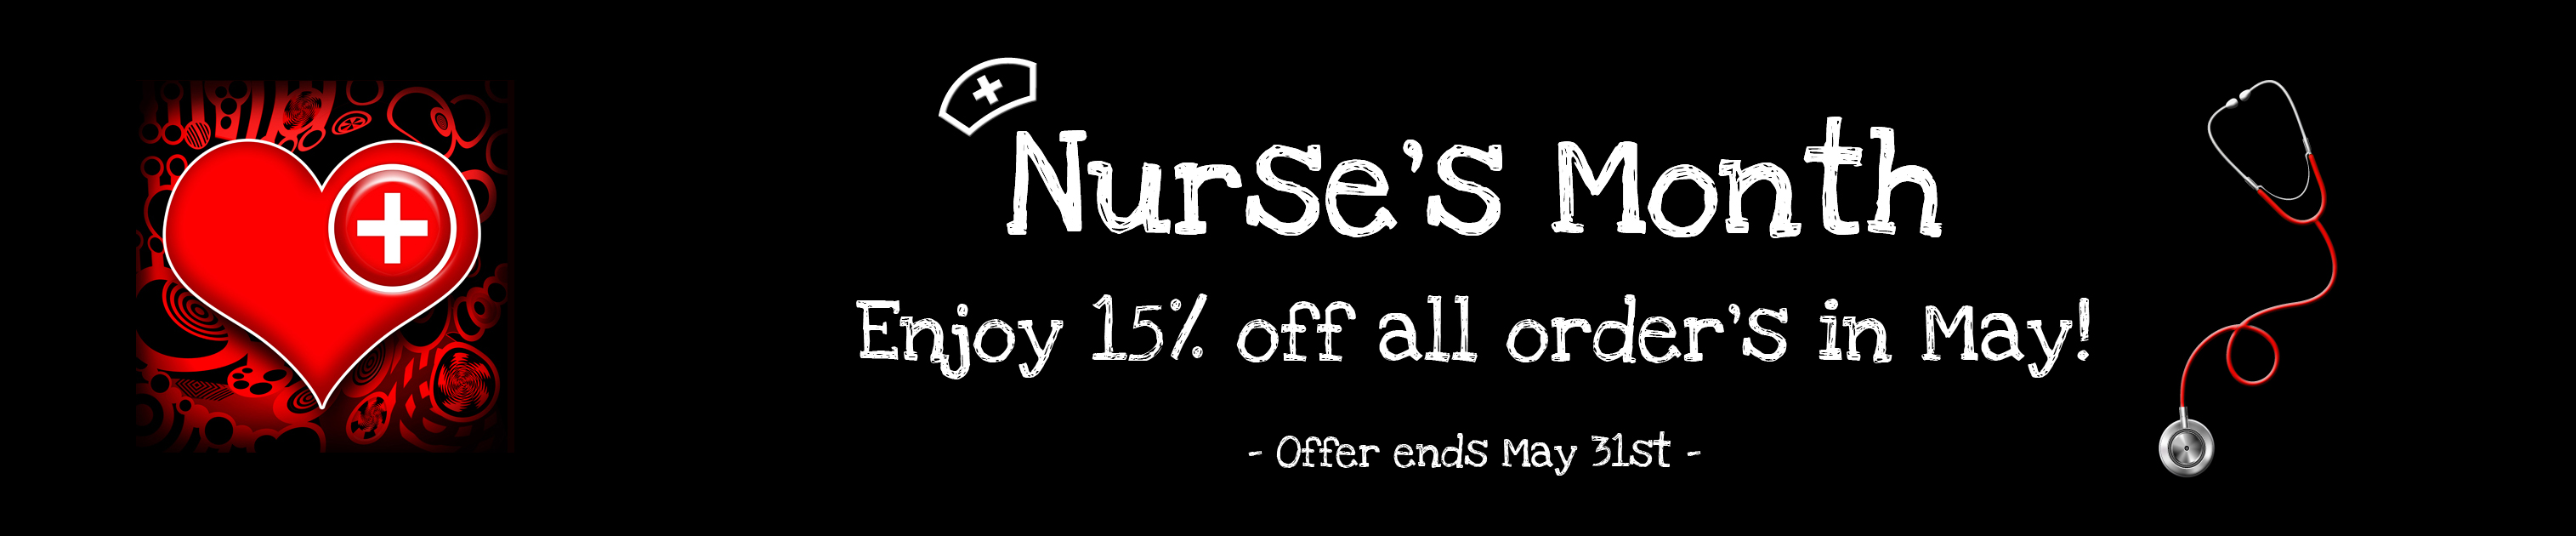 nurses-month-cover-.jpg